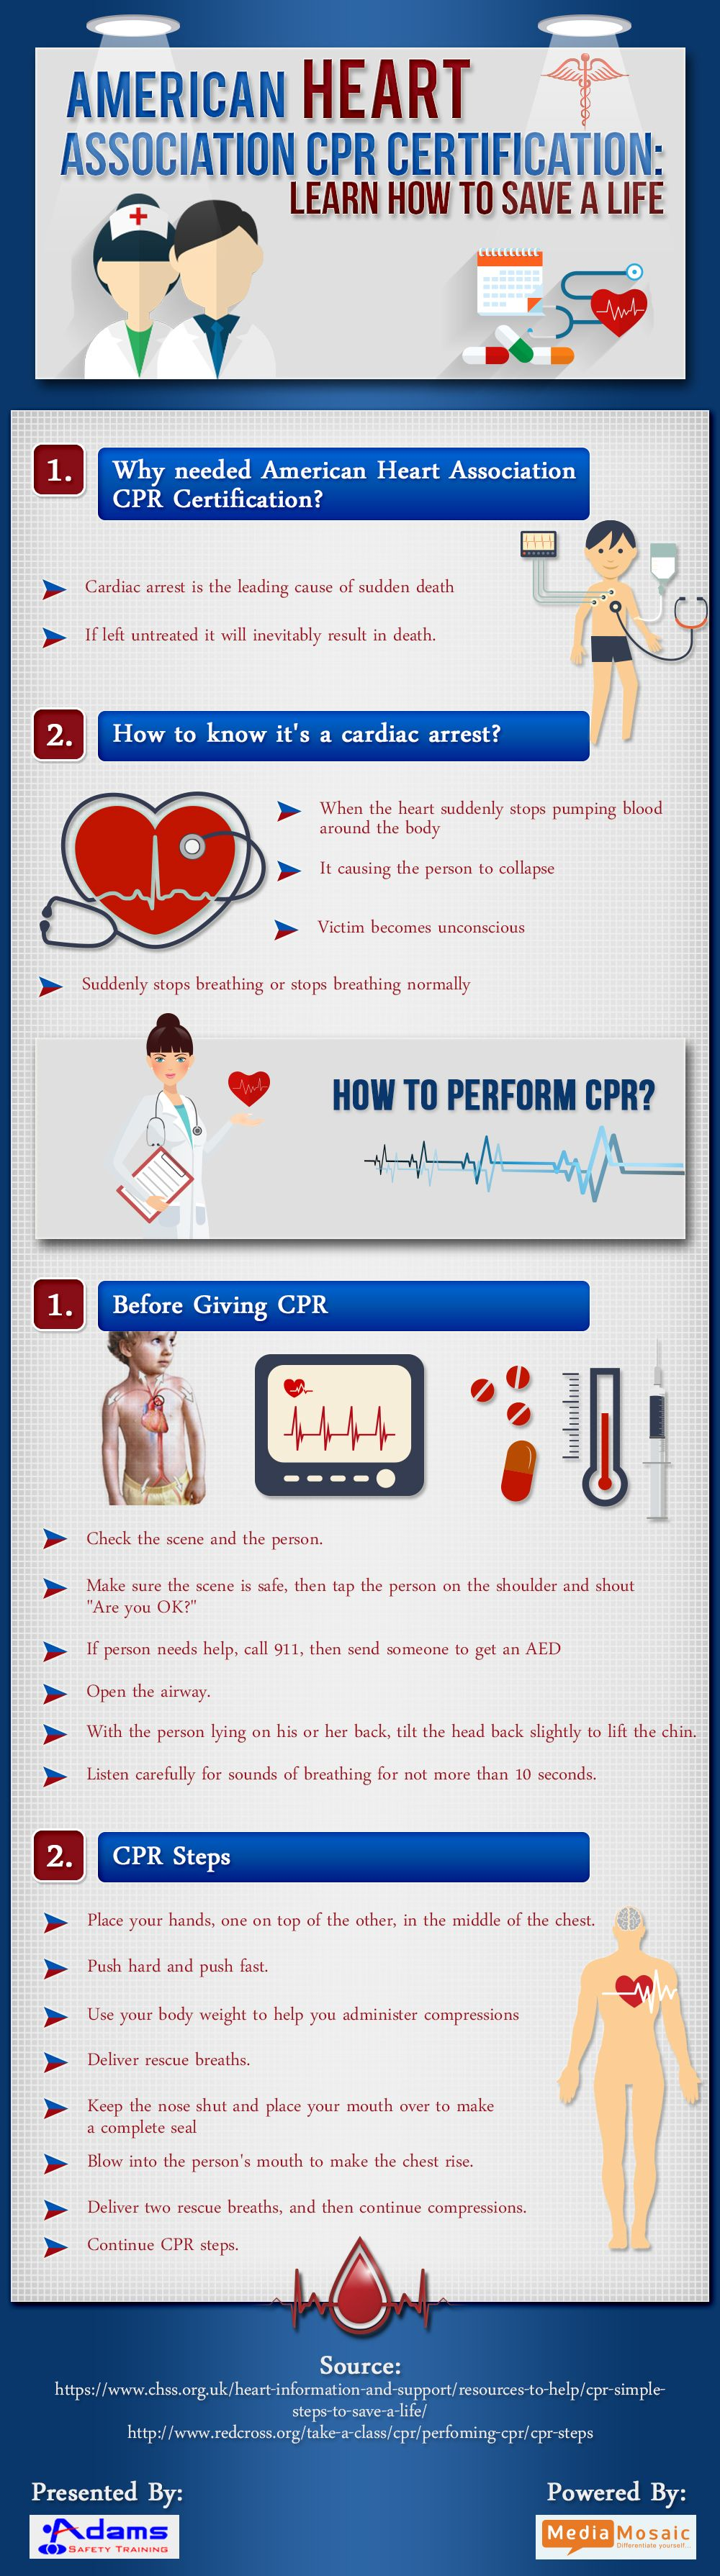 The Info Graphic Titled As American Heart Association Cpr